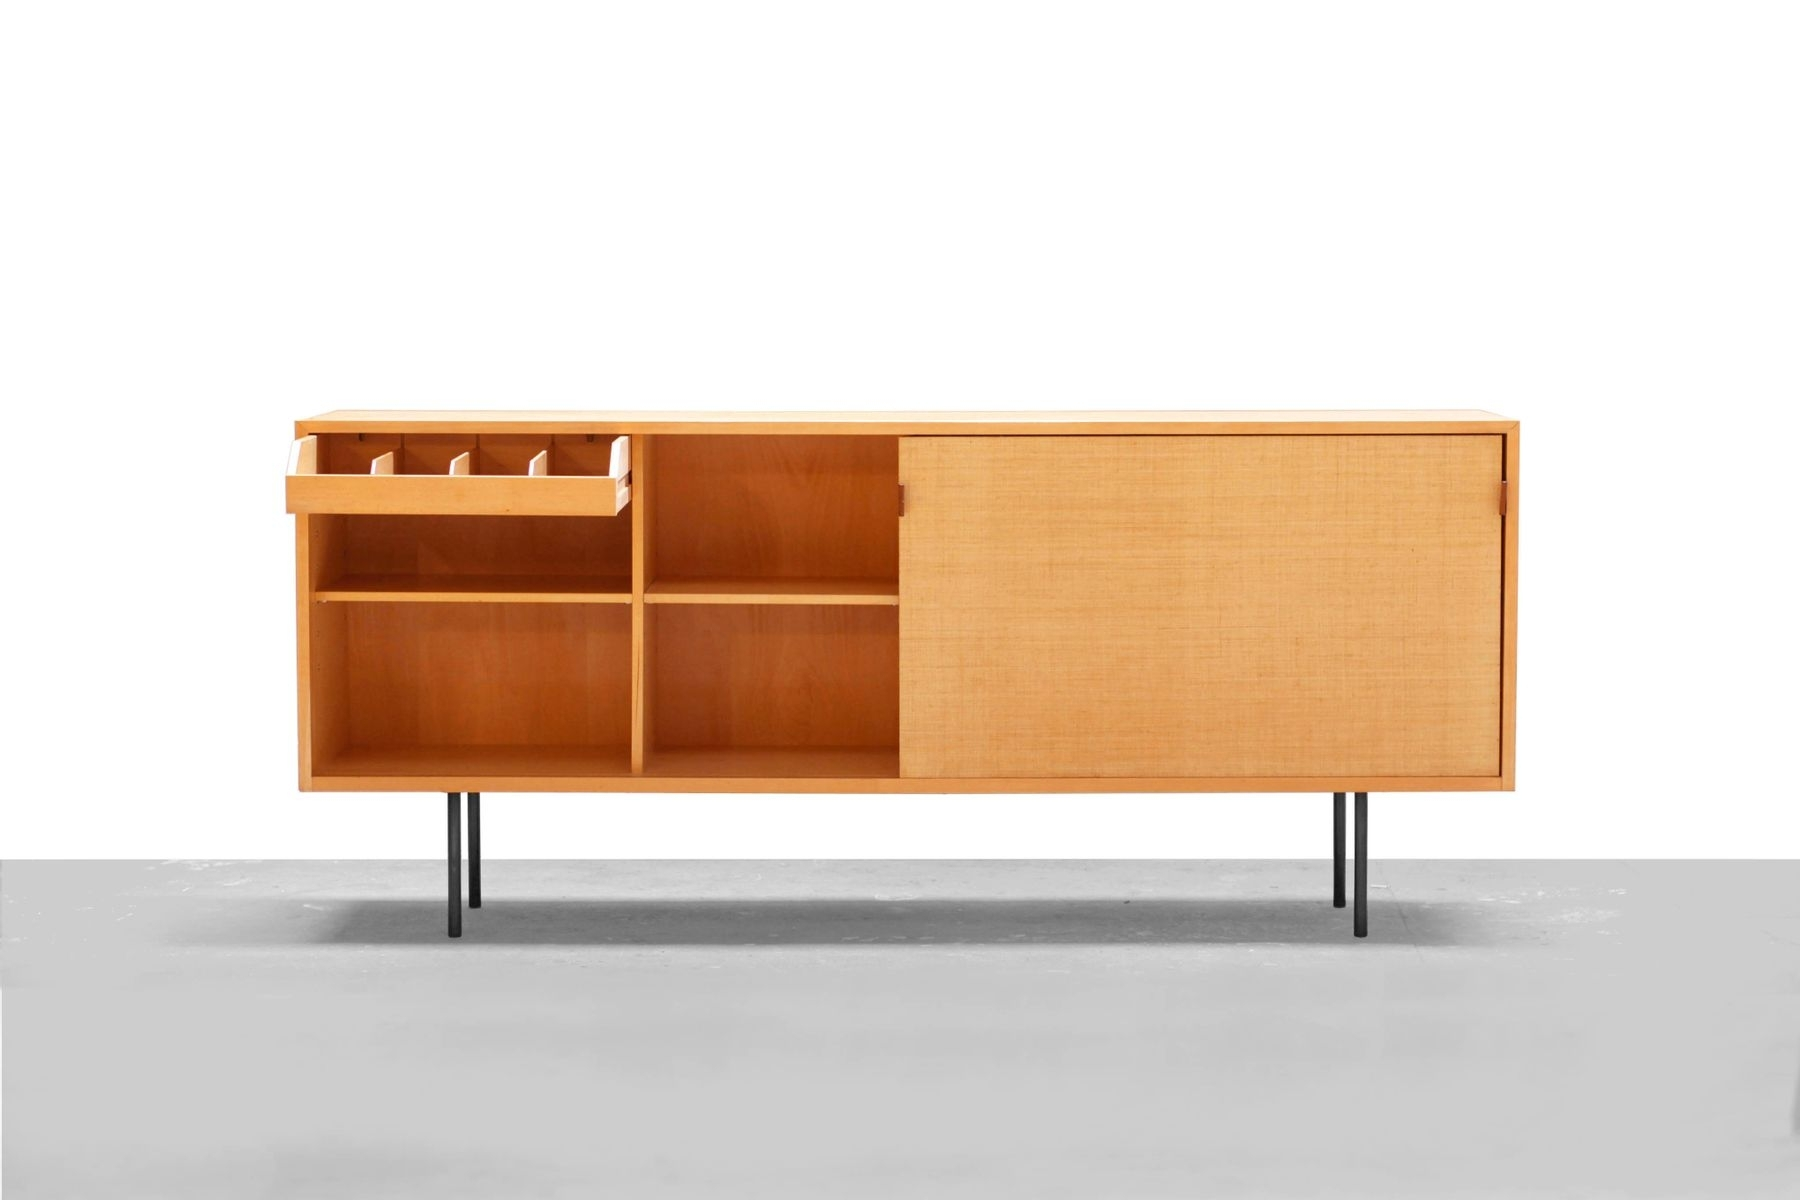 No. 118 Sideboardflorence Knoll For Knoll International, 1950S Regarding Girard 4 Door Sideboards (Photo 7 of 30)